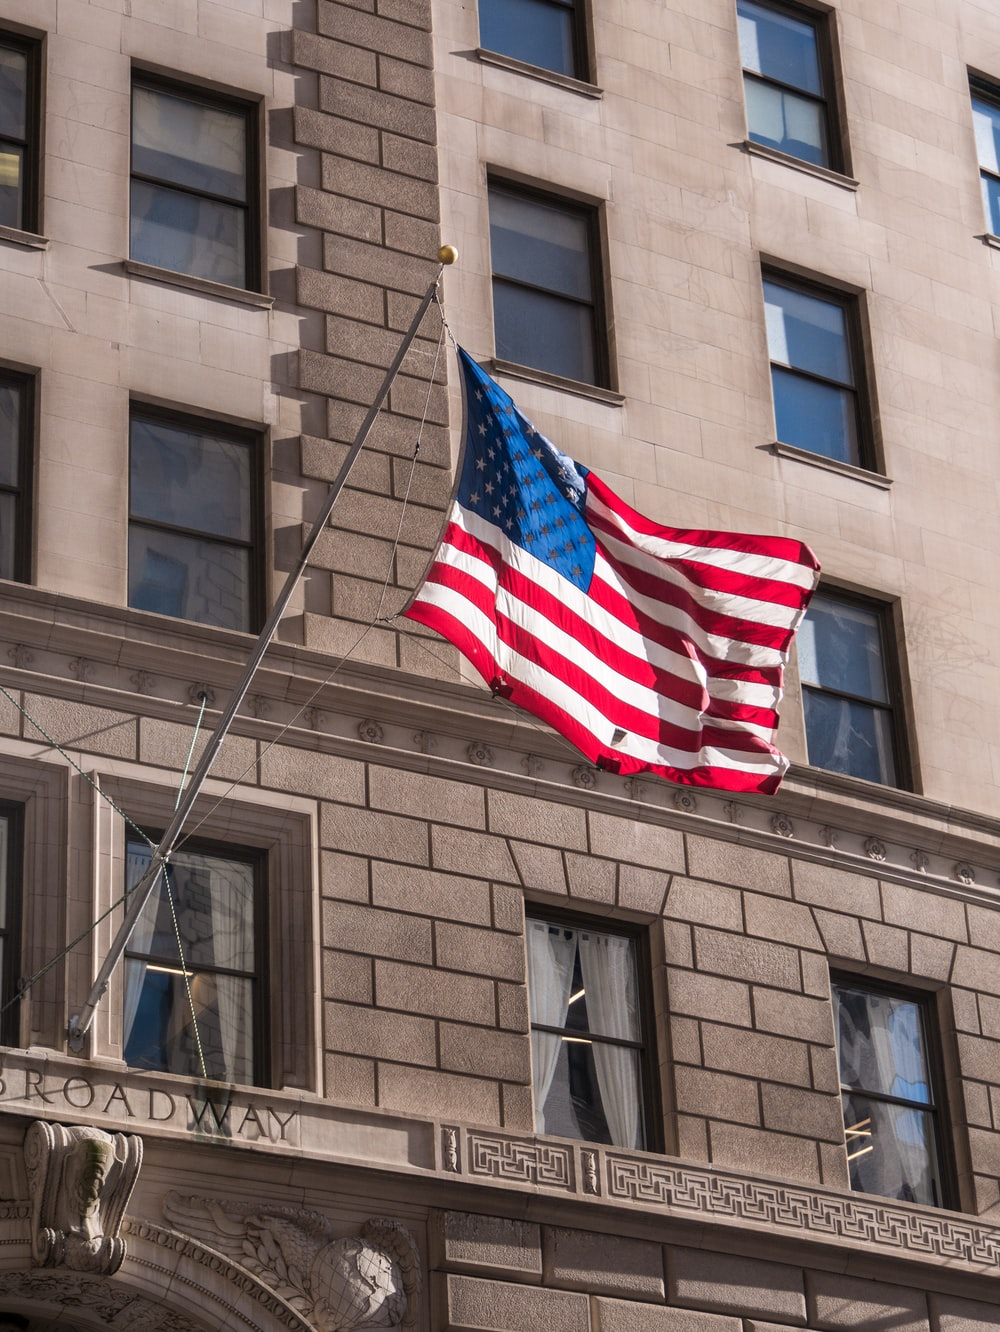 American flag outdoor during daytime